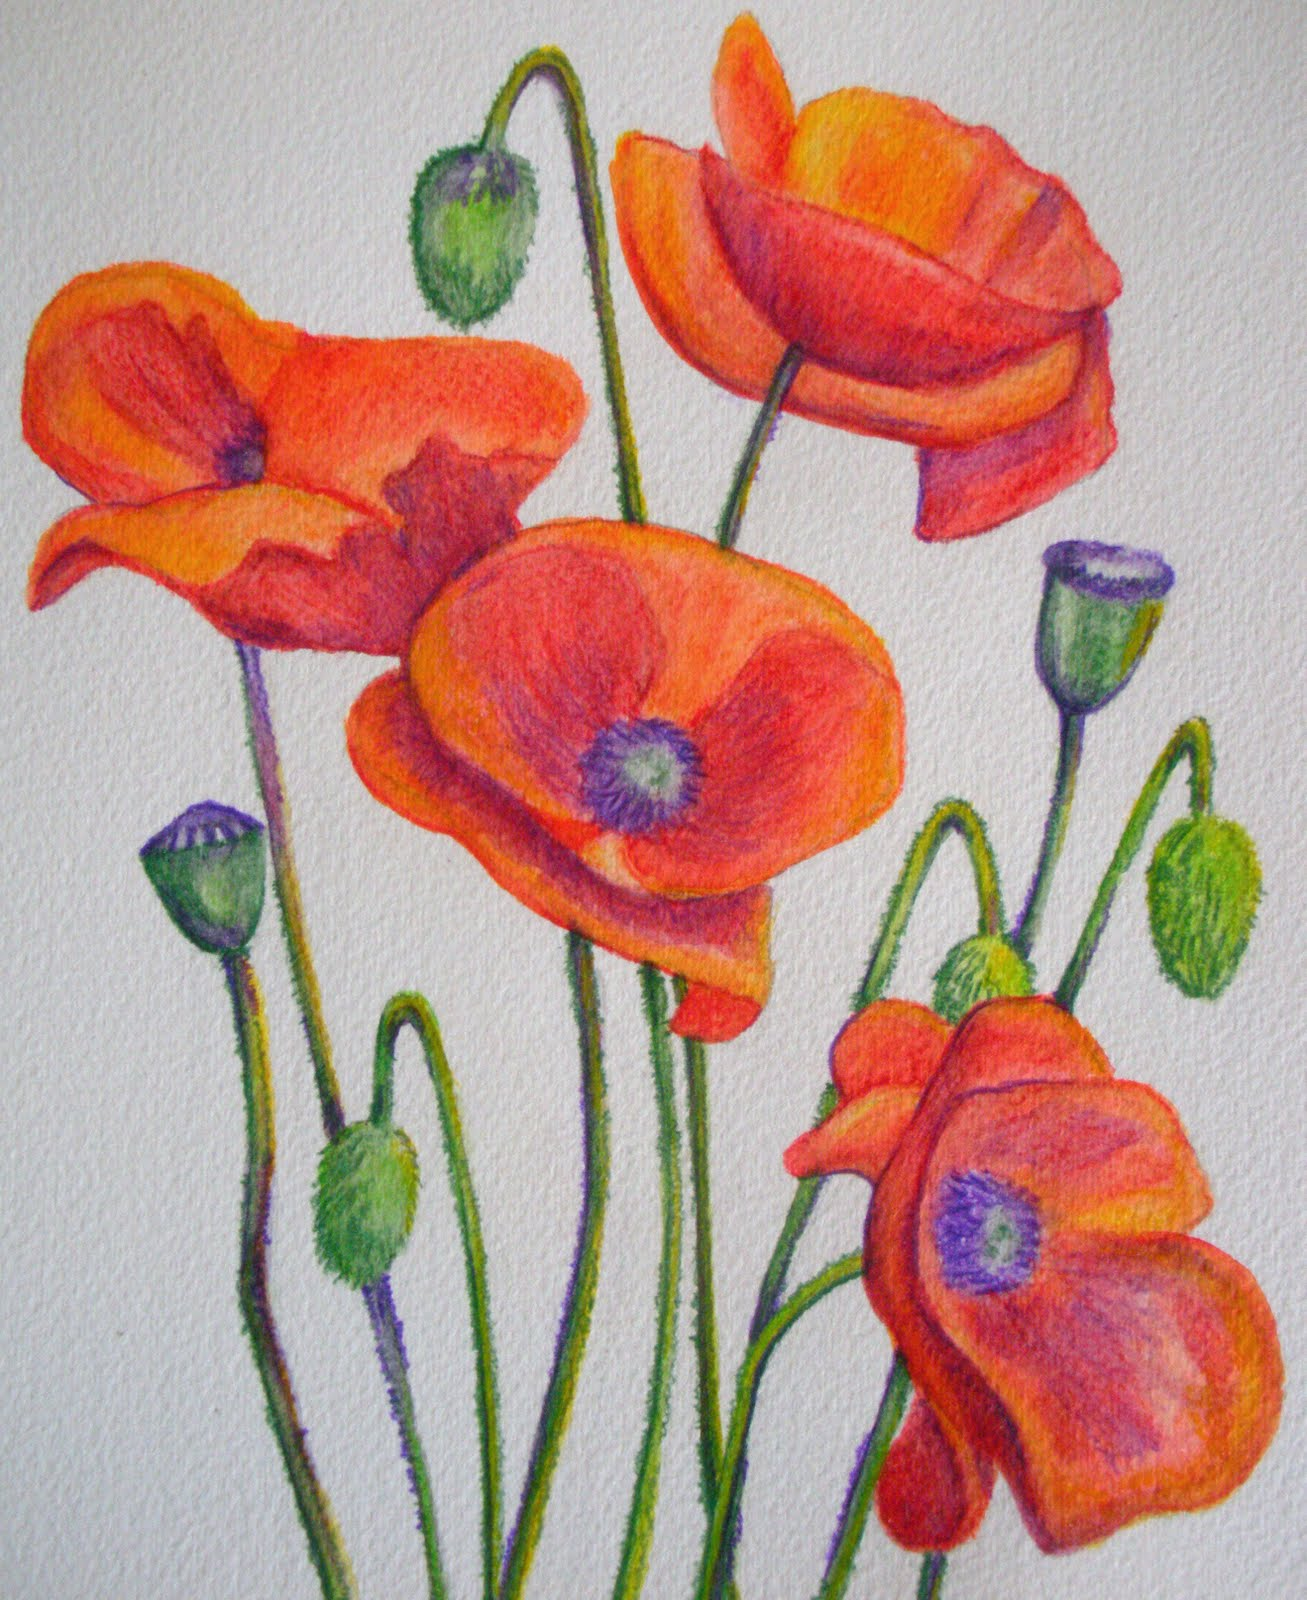 Watercolour Flowers: Wild Flowers DVD with Sheila Southwell, Art